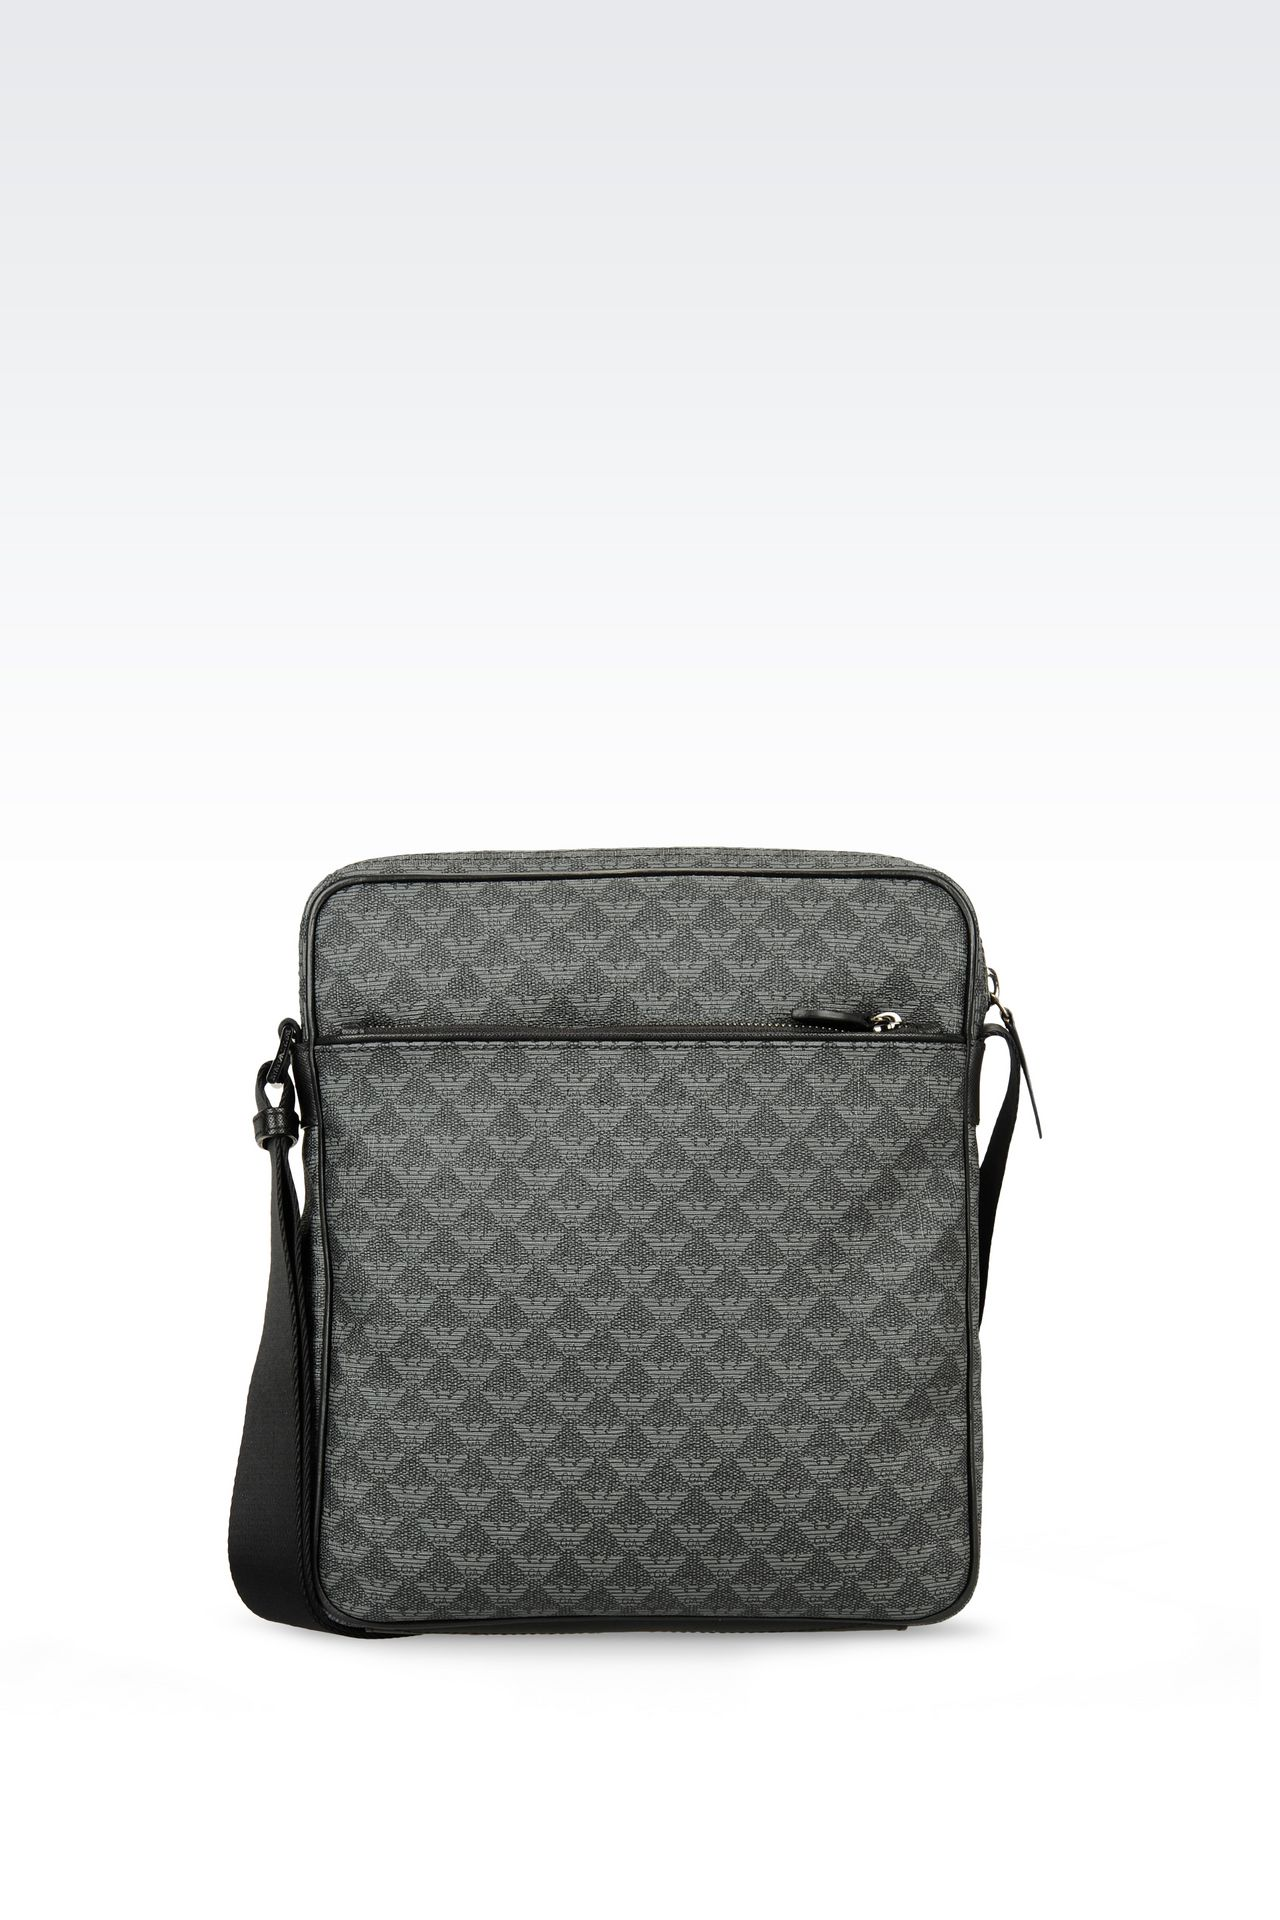 Emporio Armani bags for men online - Armani.com